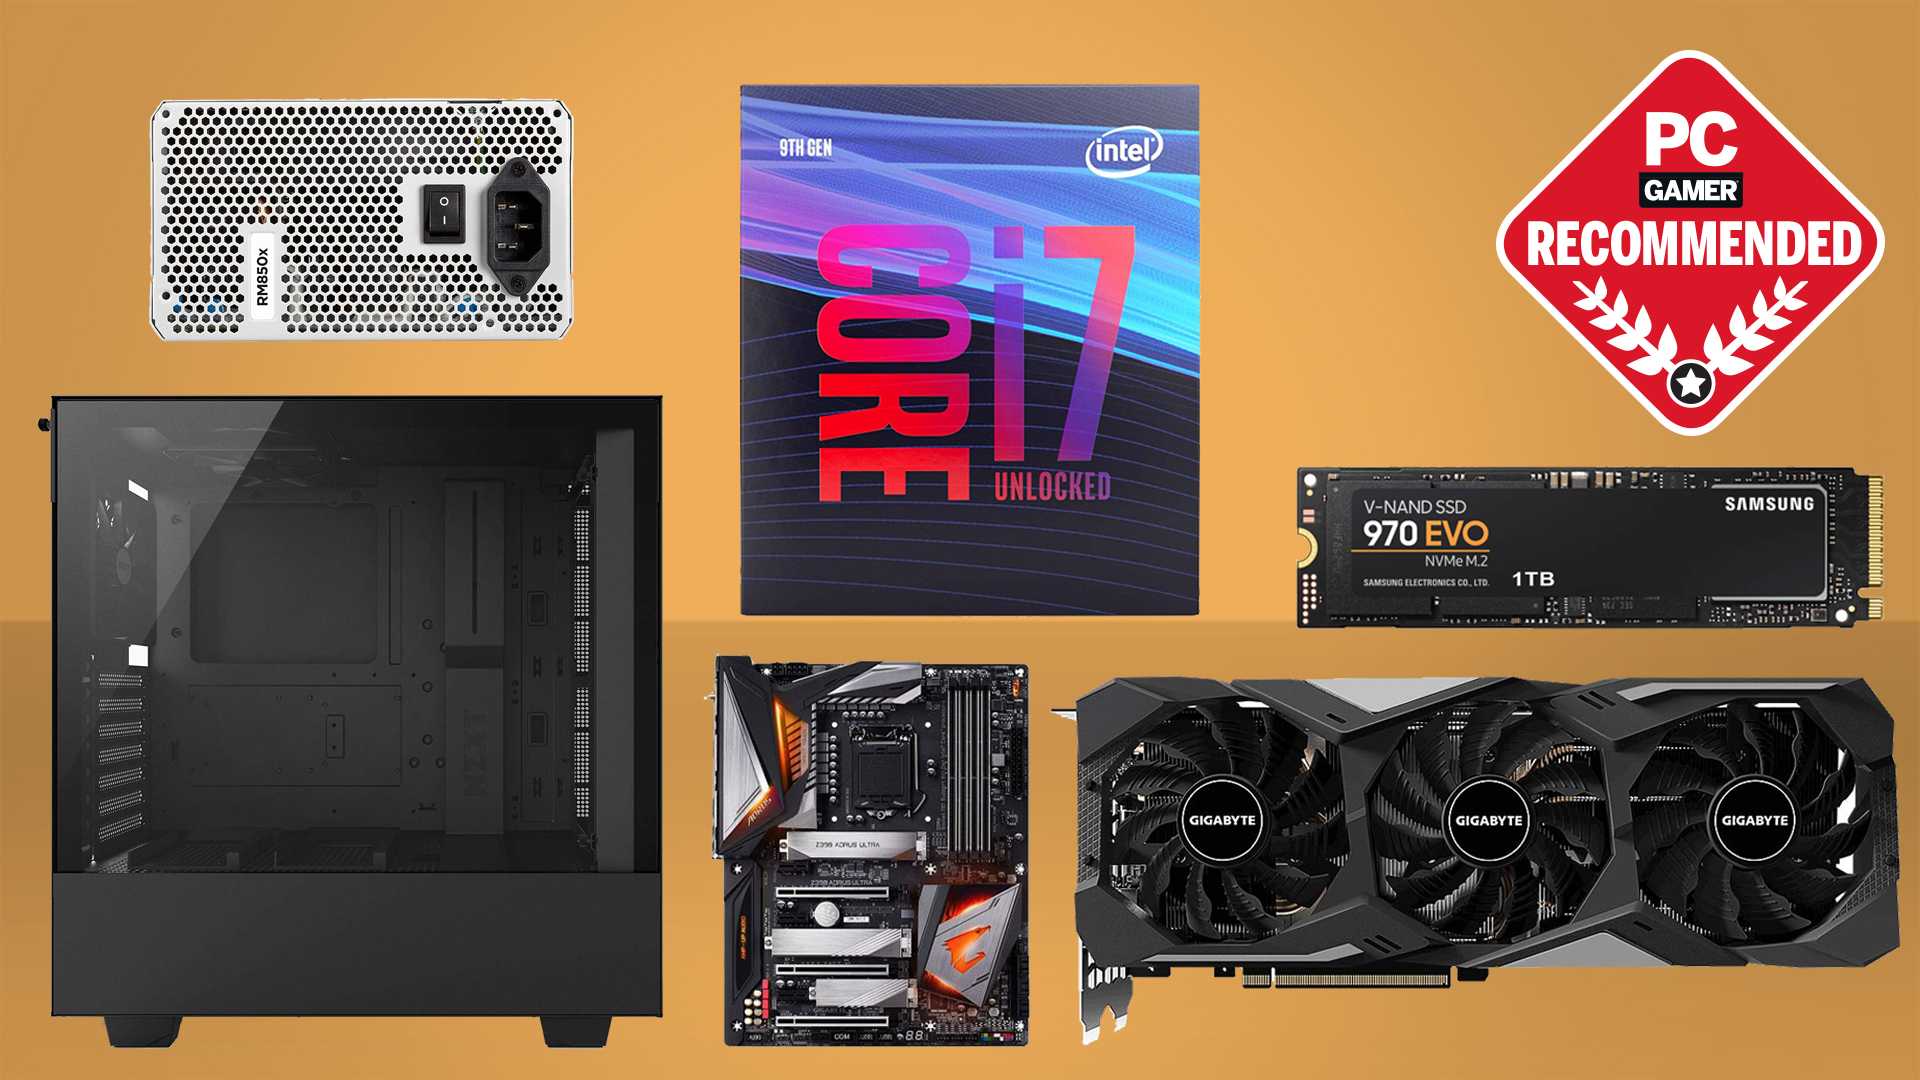 Best Pc Builds 2021 High end gaming PC build guide | PC Gamer